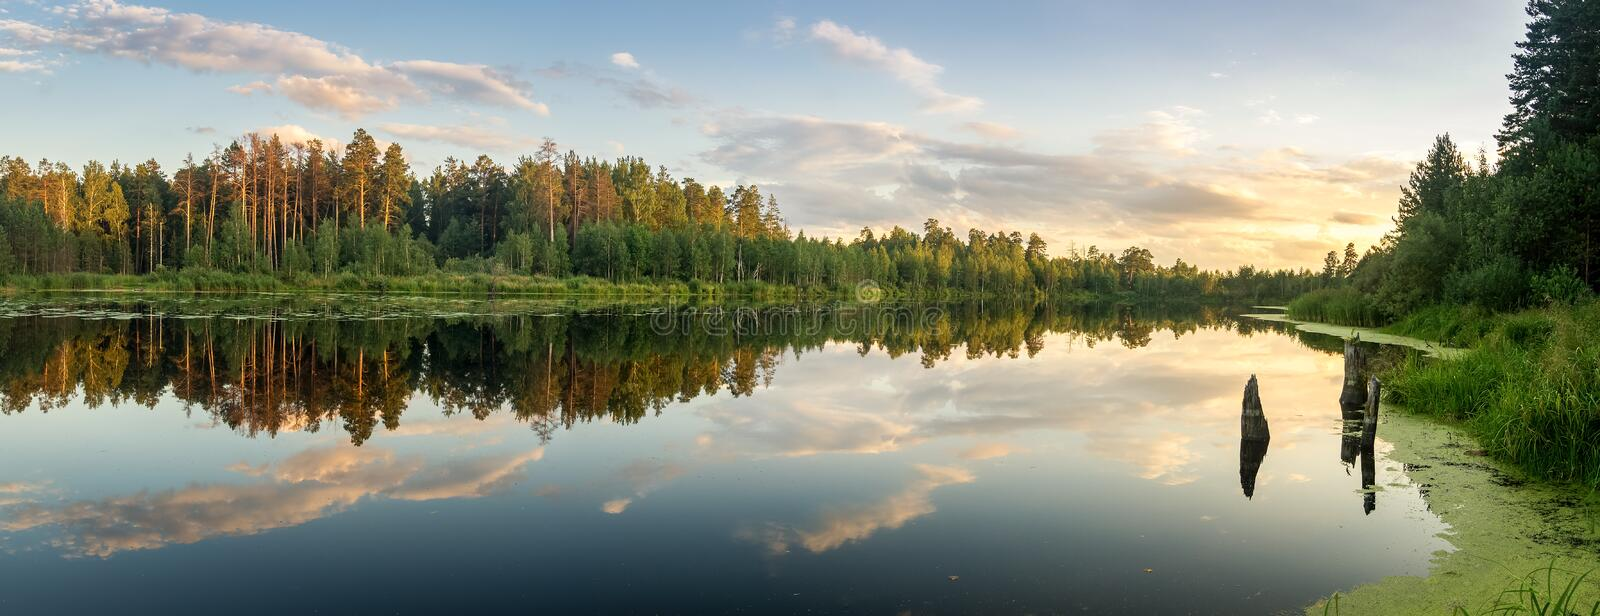 Summer evening landscape on Ural lake with pine trees on the shore, Russia. August royalty free stock photos